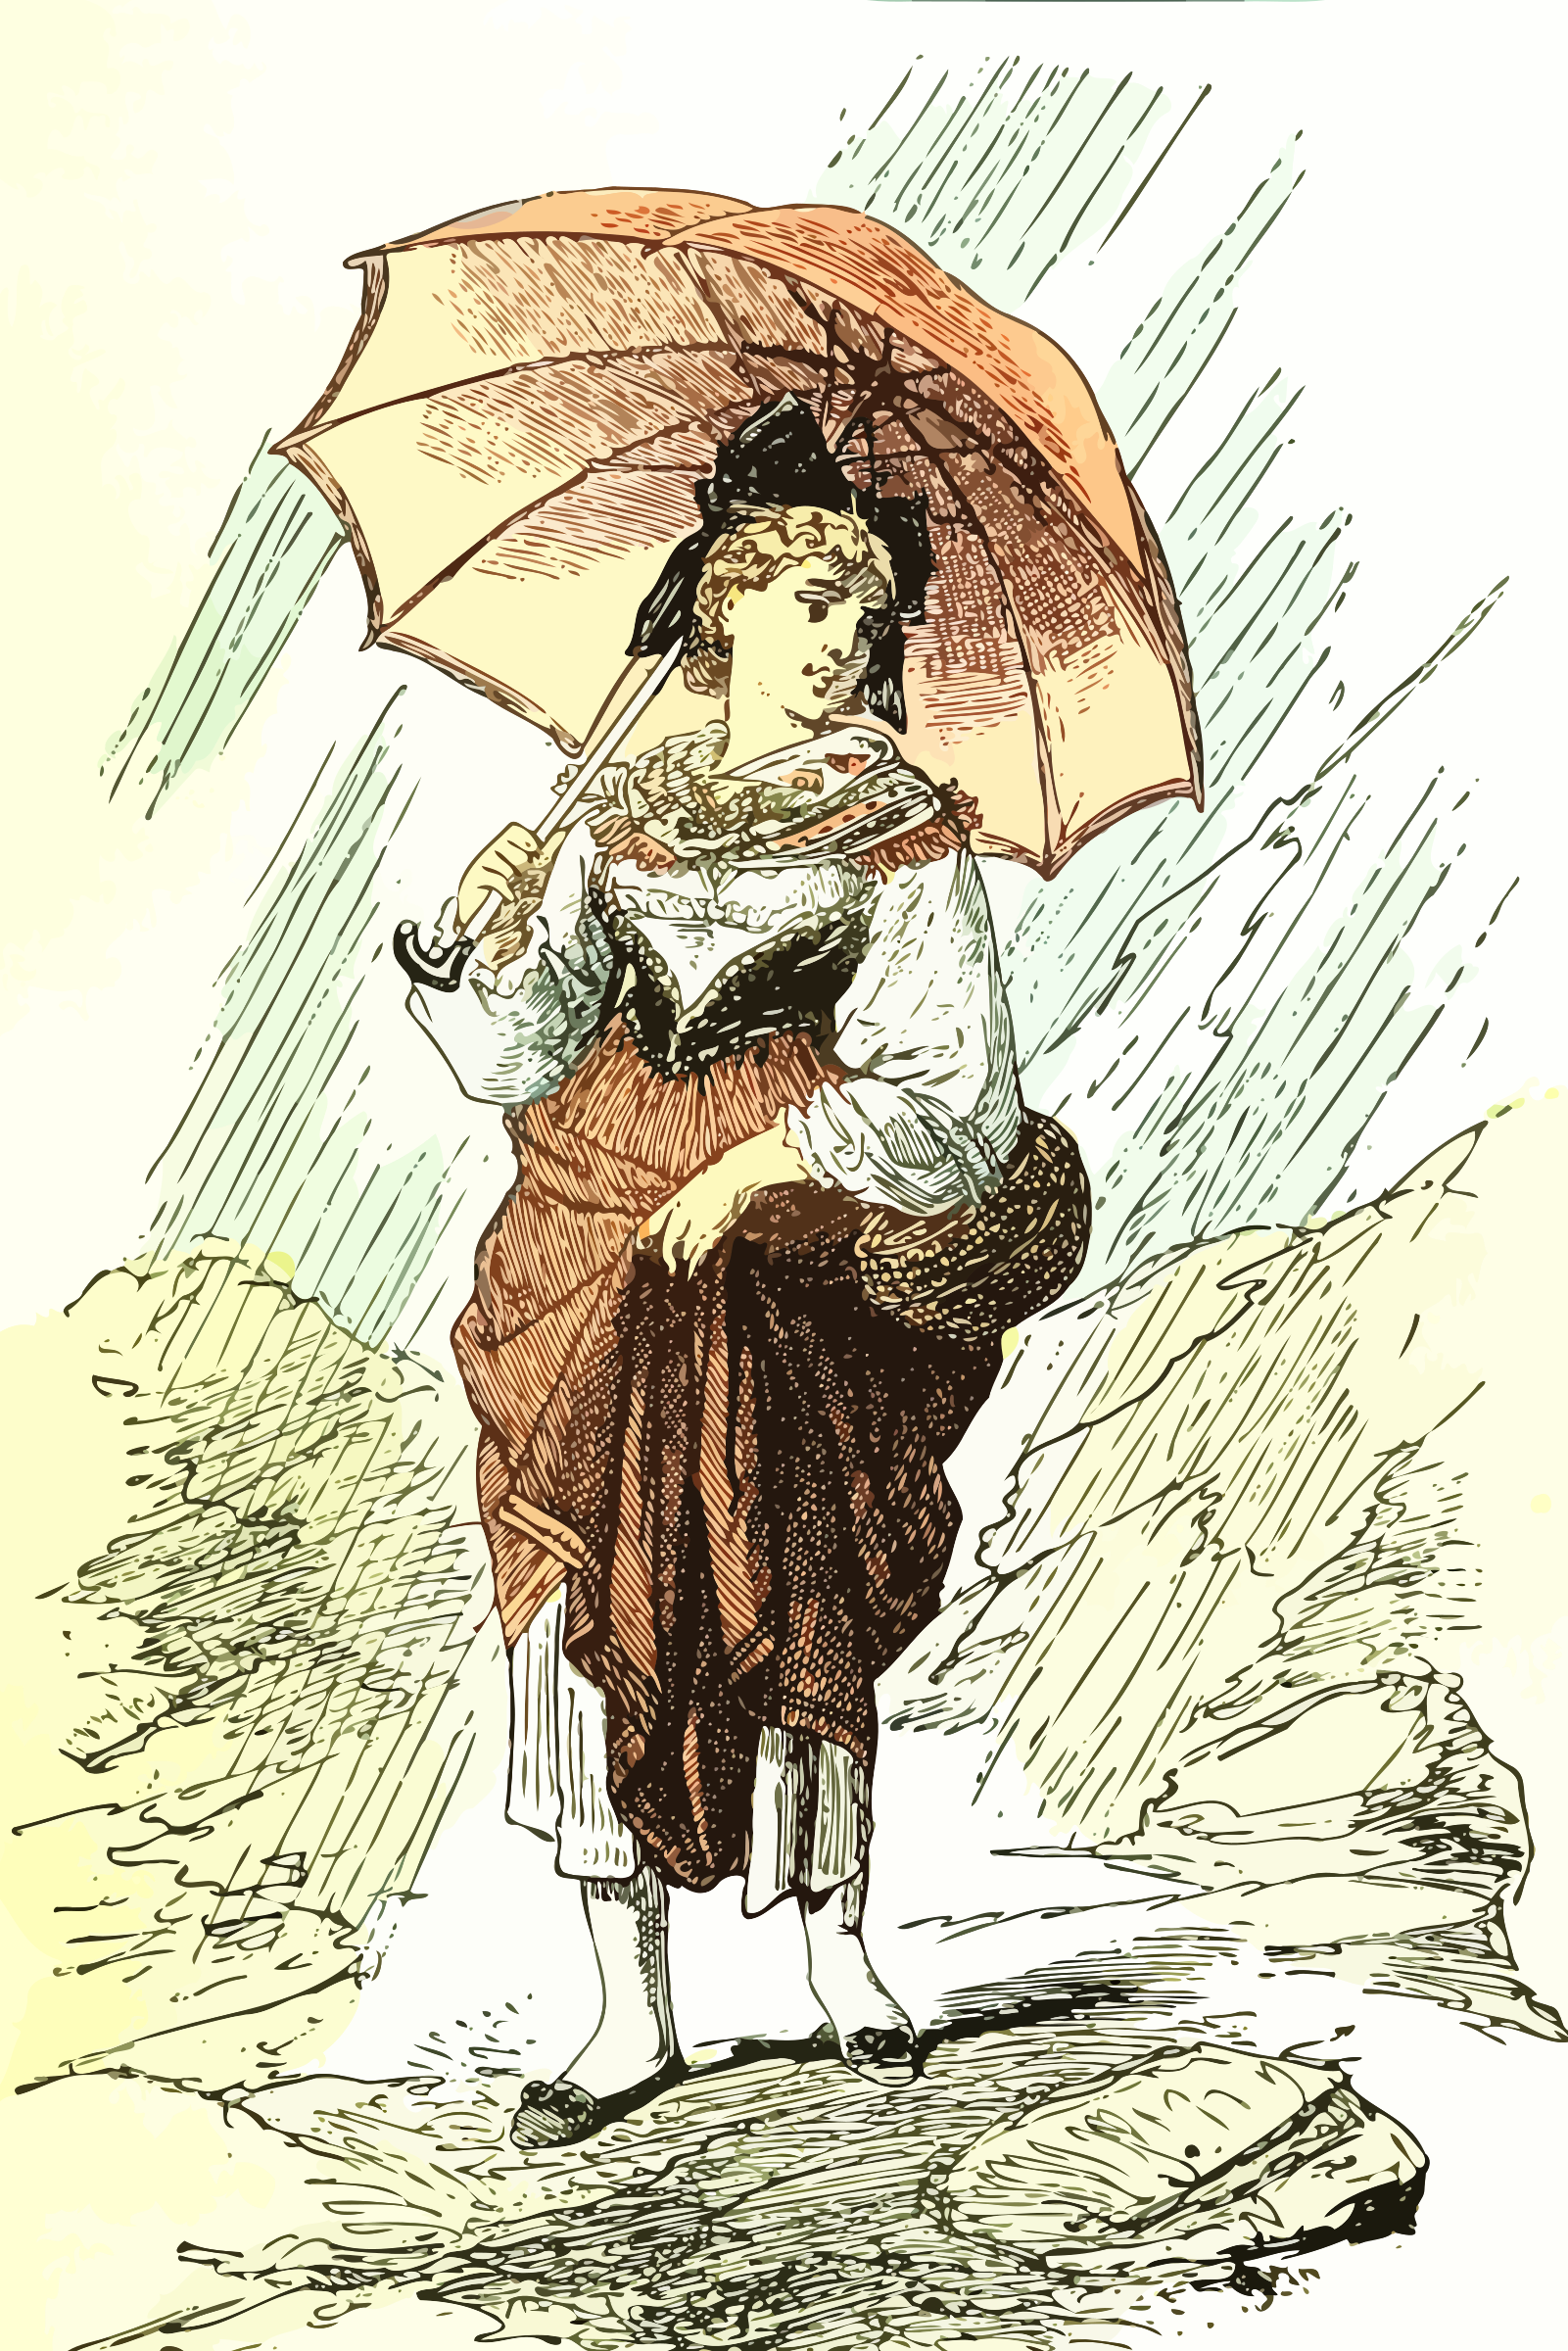 Lady in the rain by Firkin